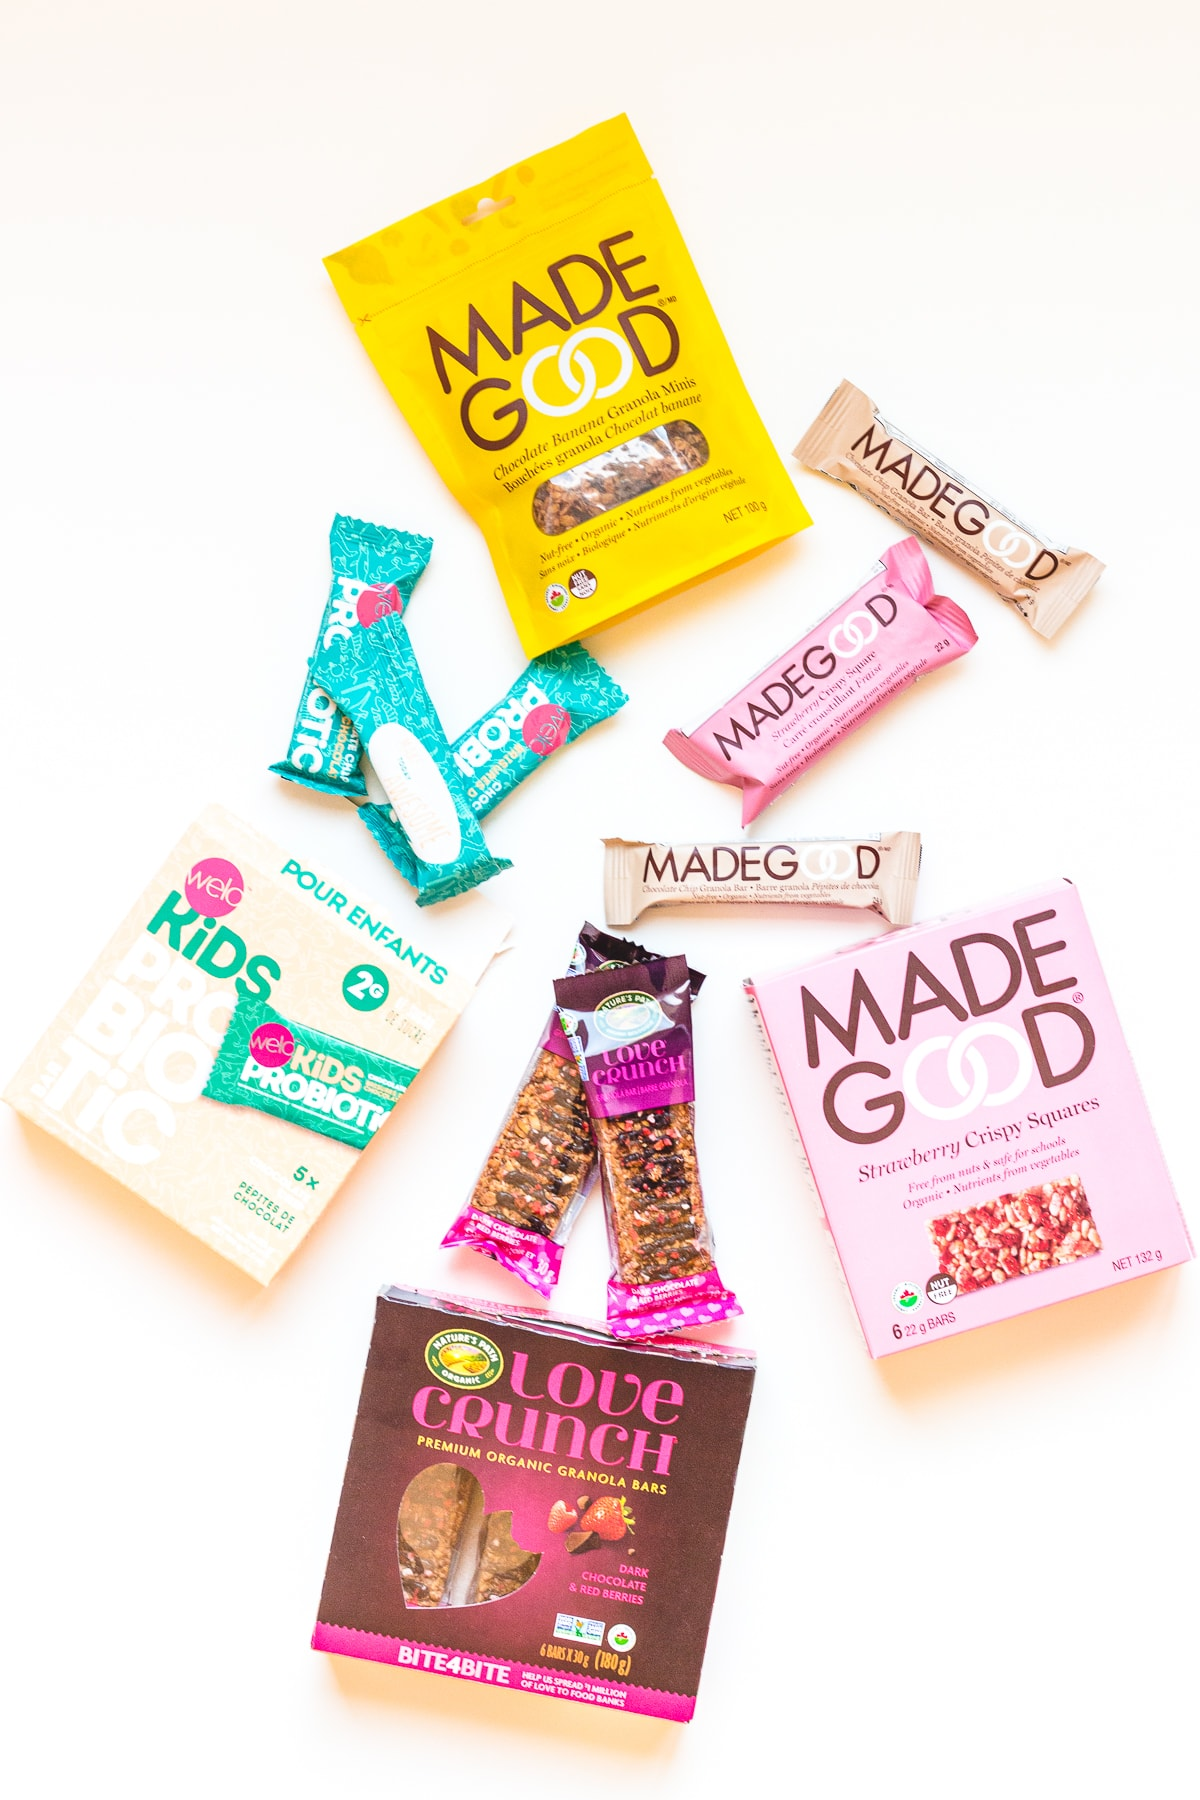 A variety of packaged bars displayed on a white background.